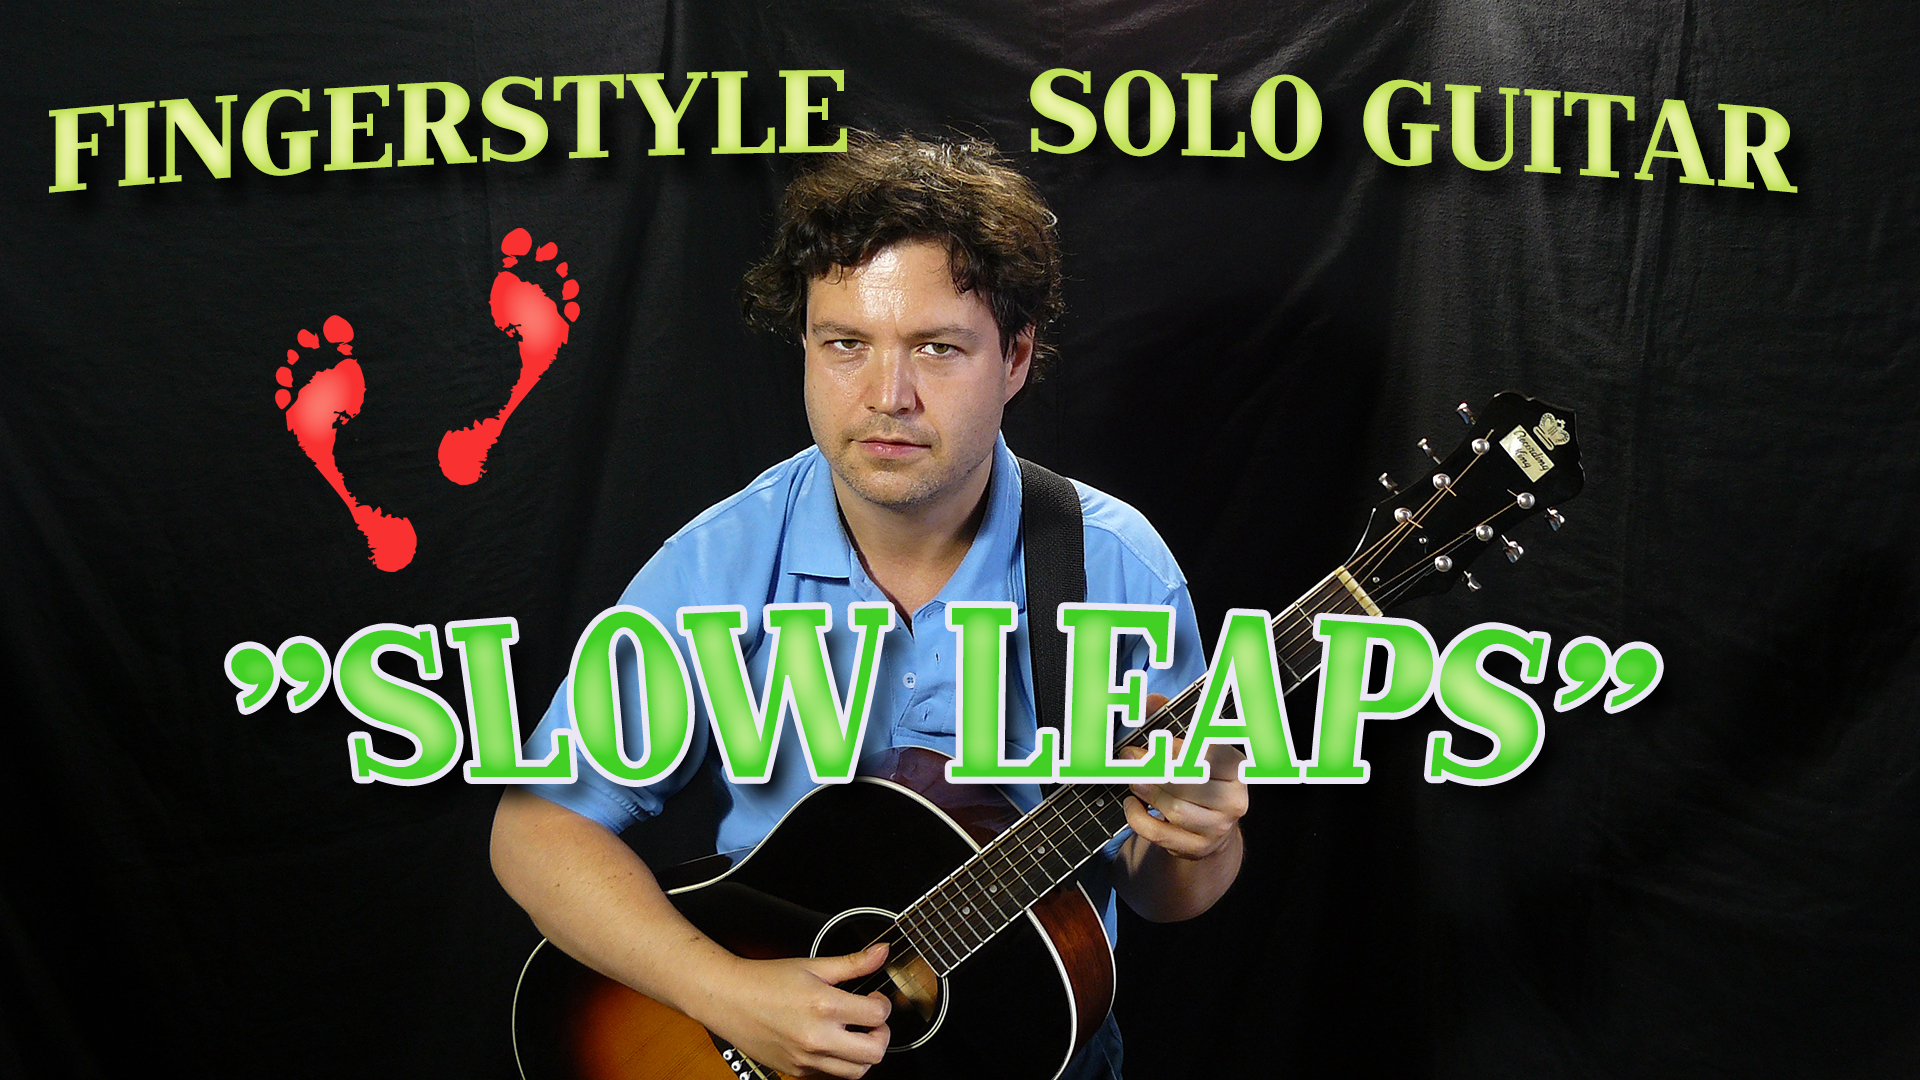 slow leaps fingerstyle acoustic polyphonic solo guitar